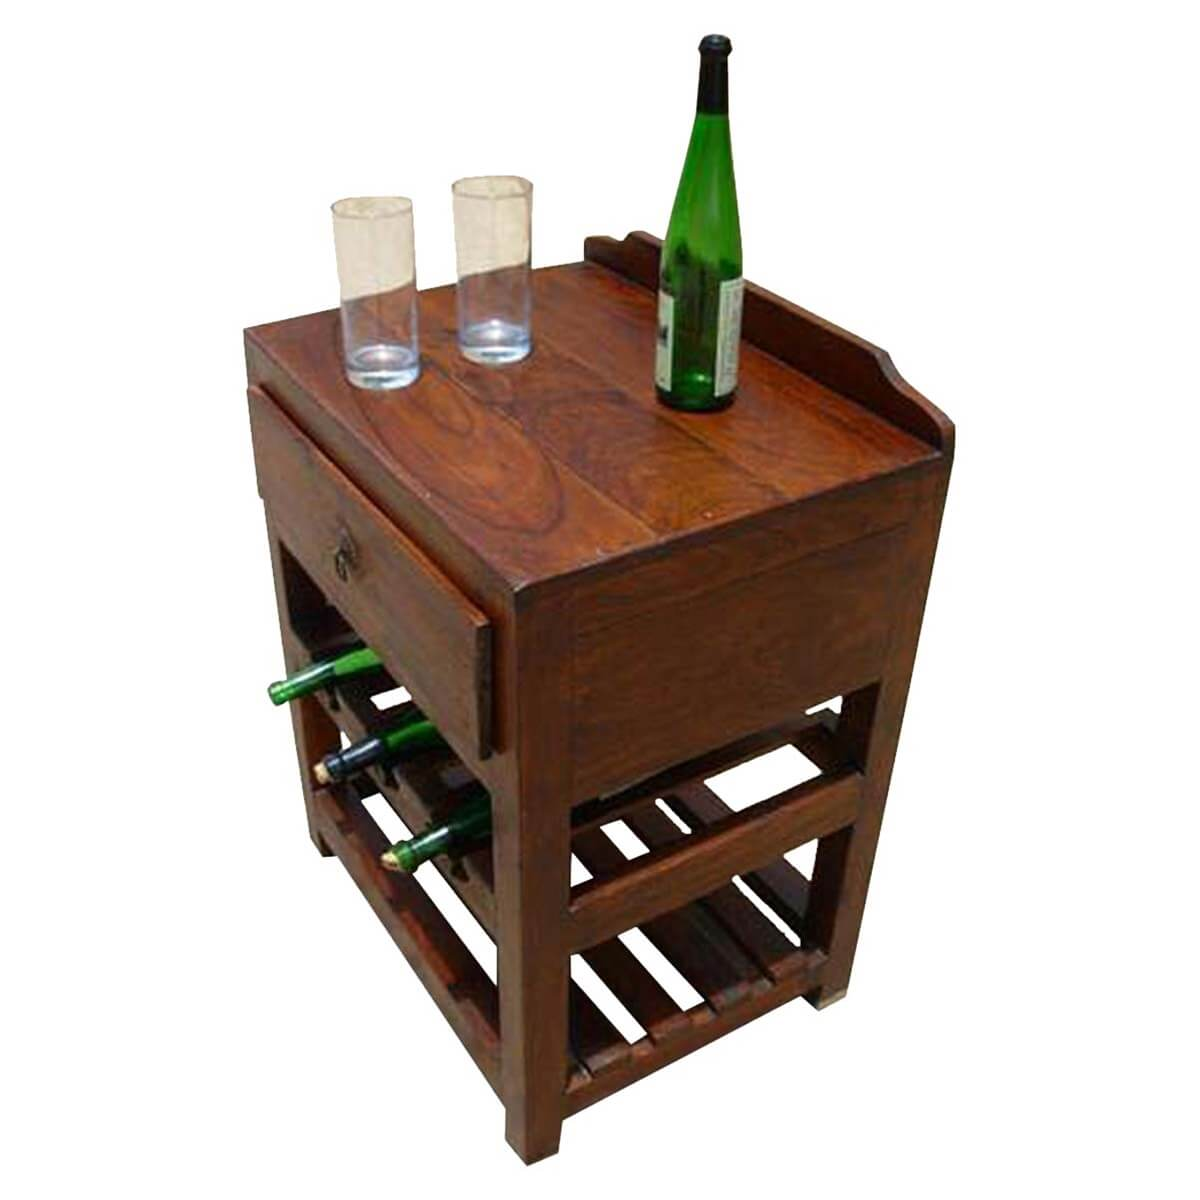 built stylish corner table of rack wine ideas the in